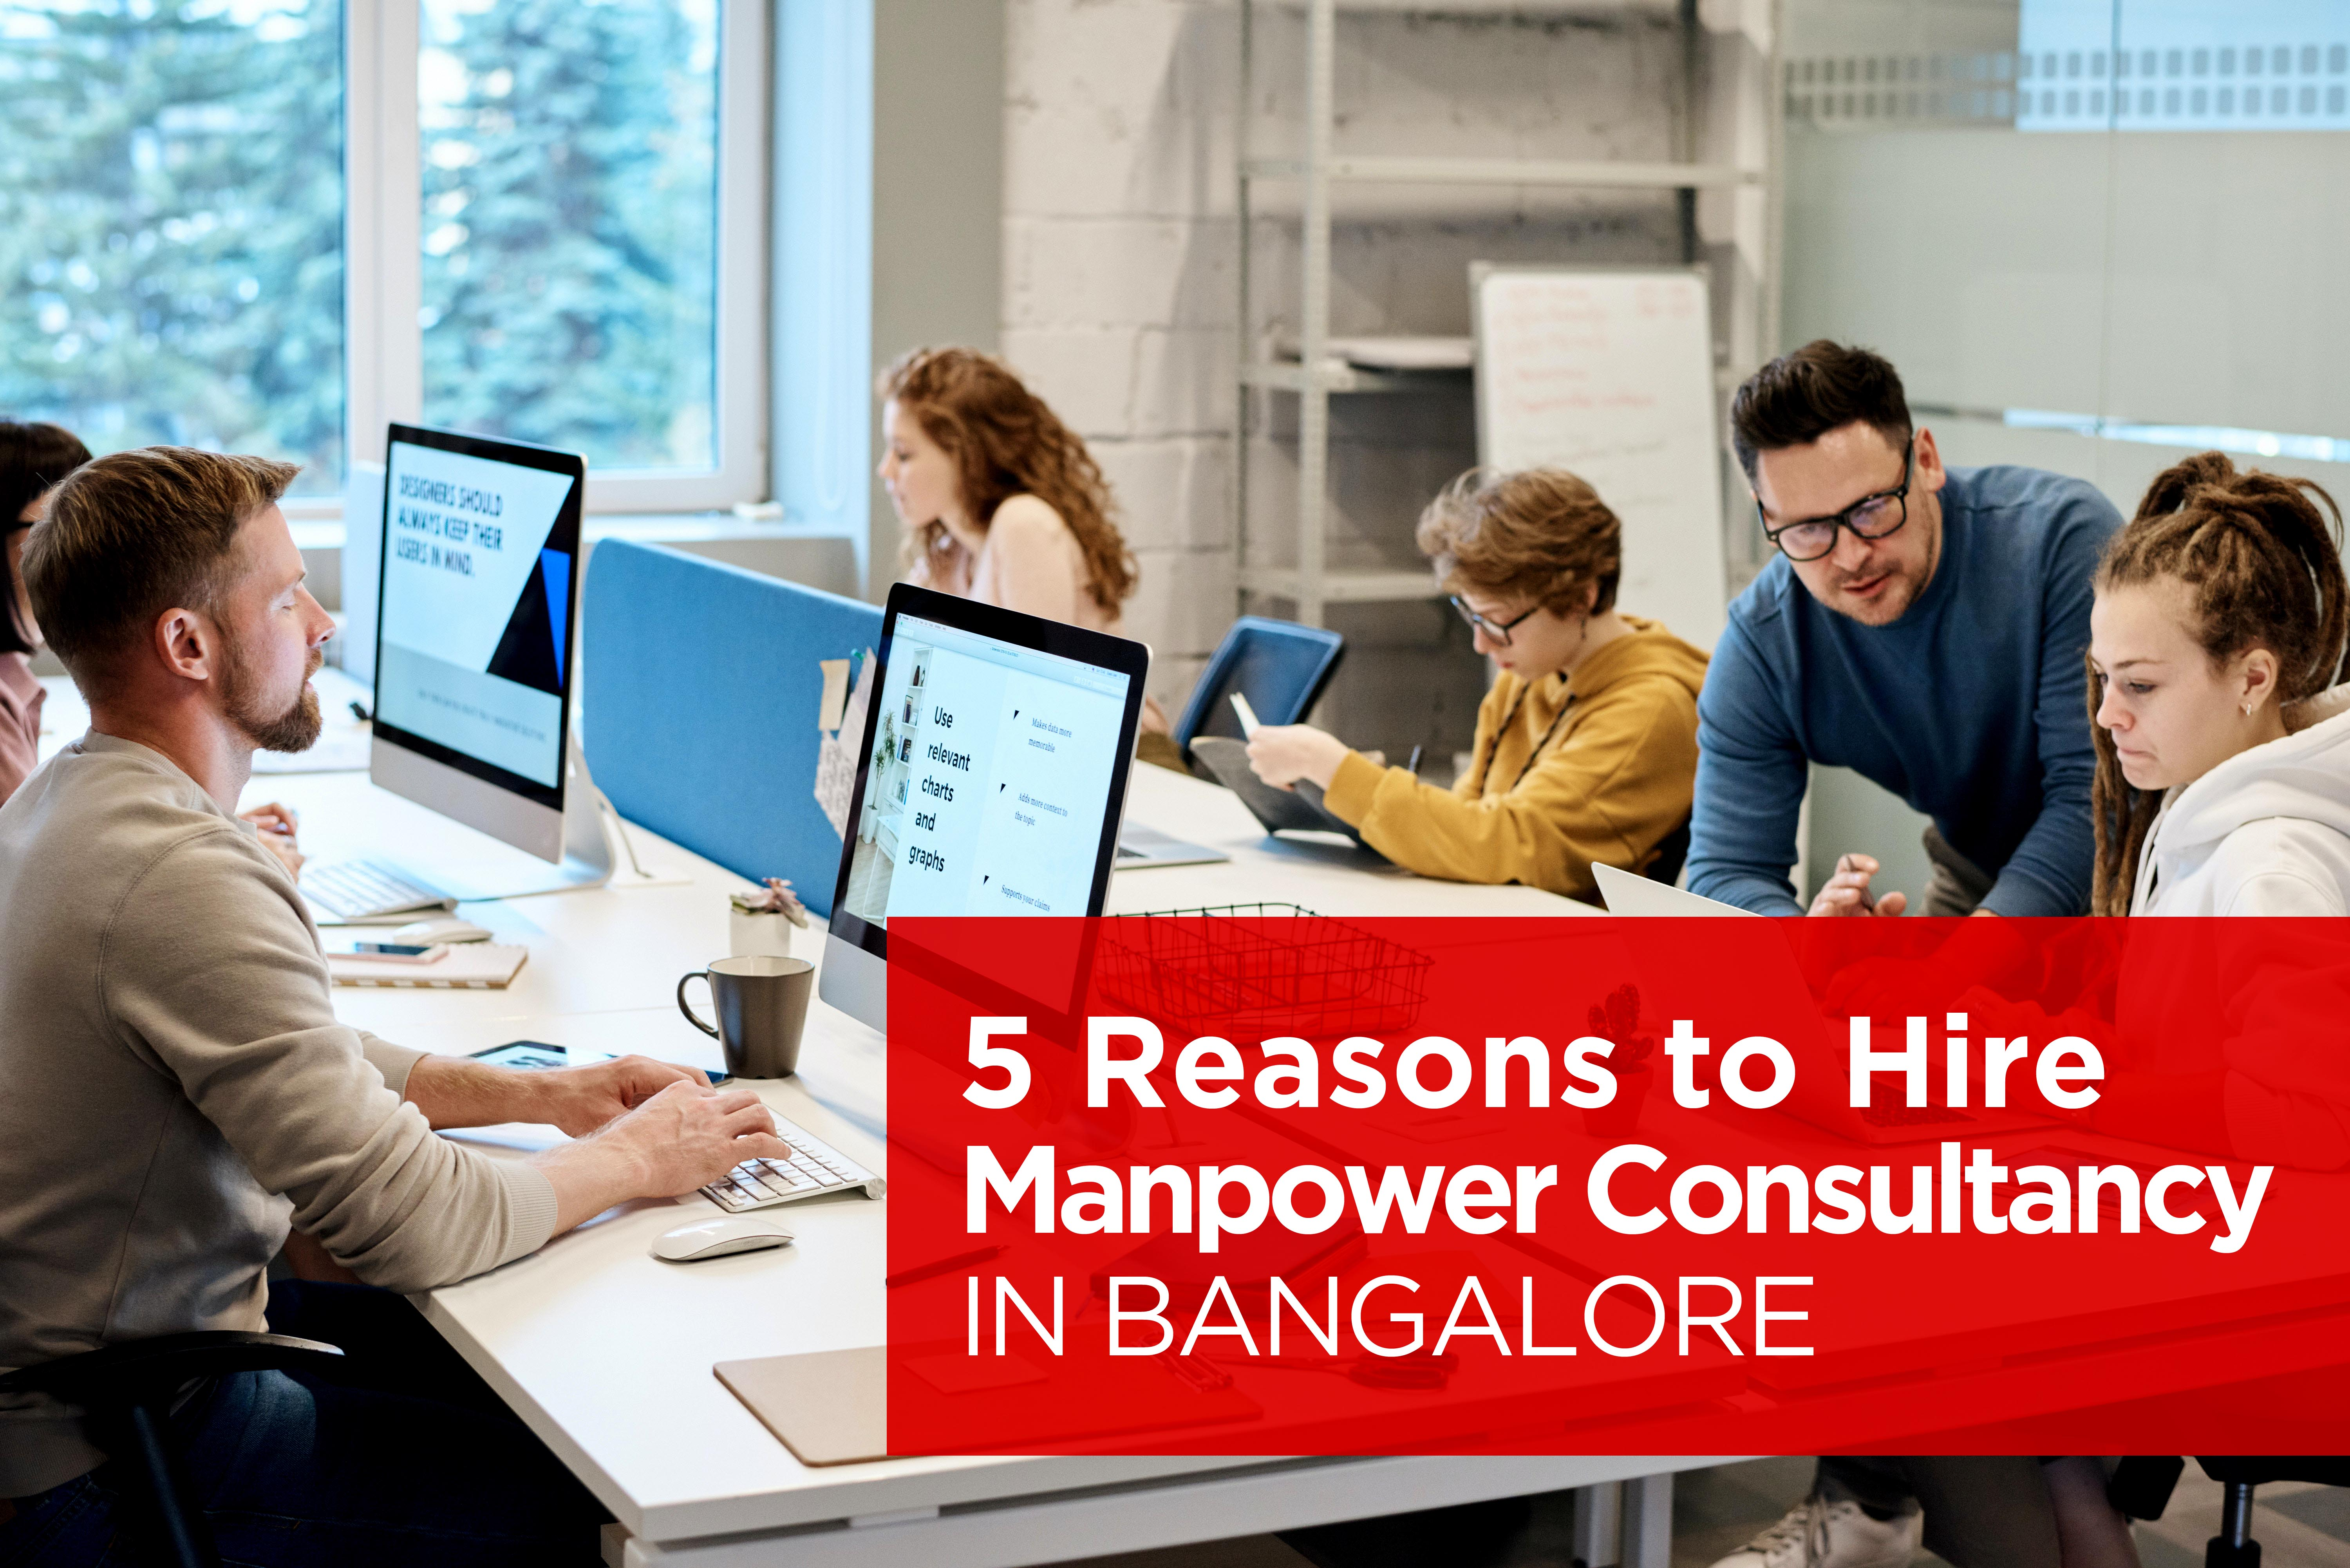 Manpower-Consultancy-in-Bangalore-PITCS-